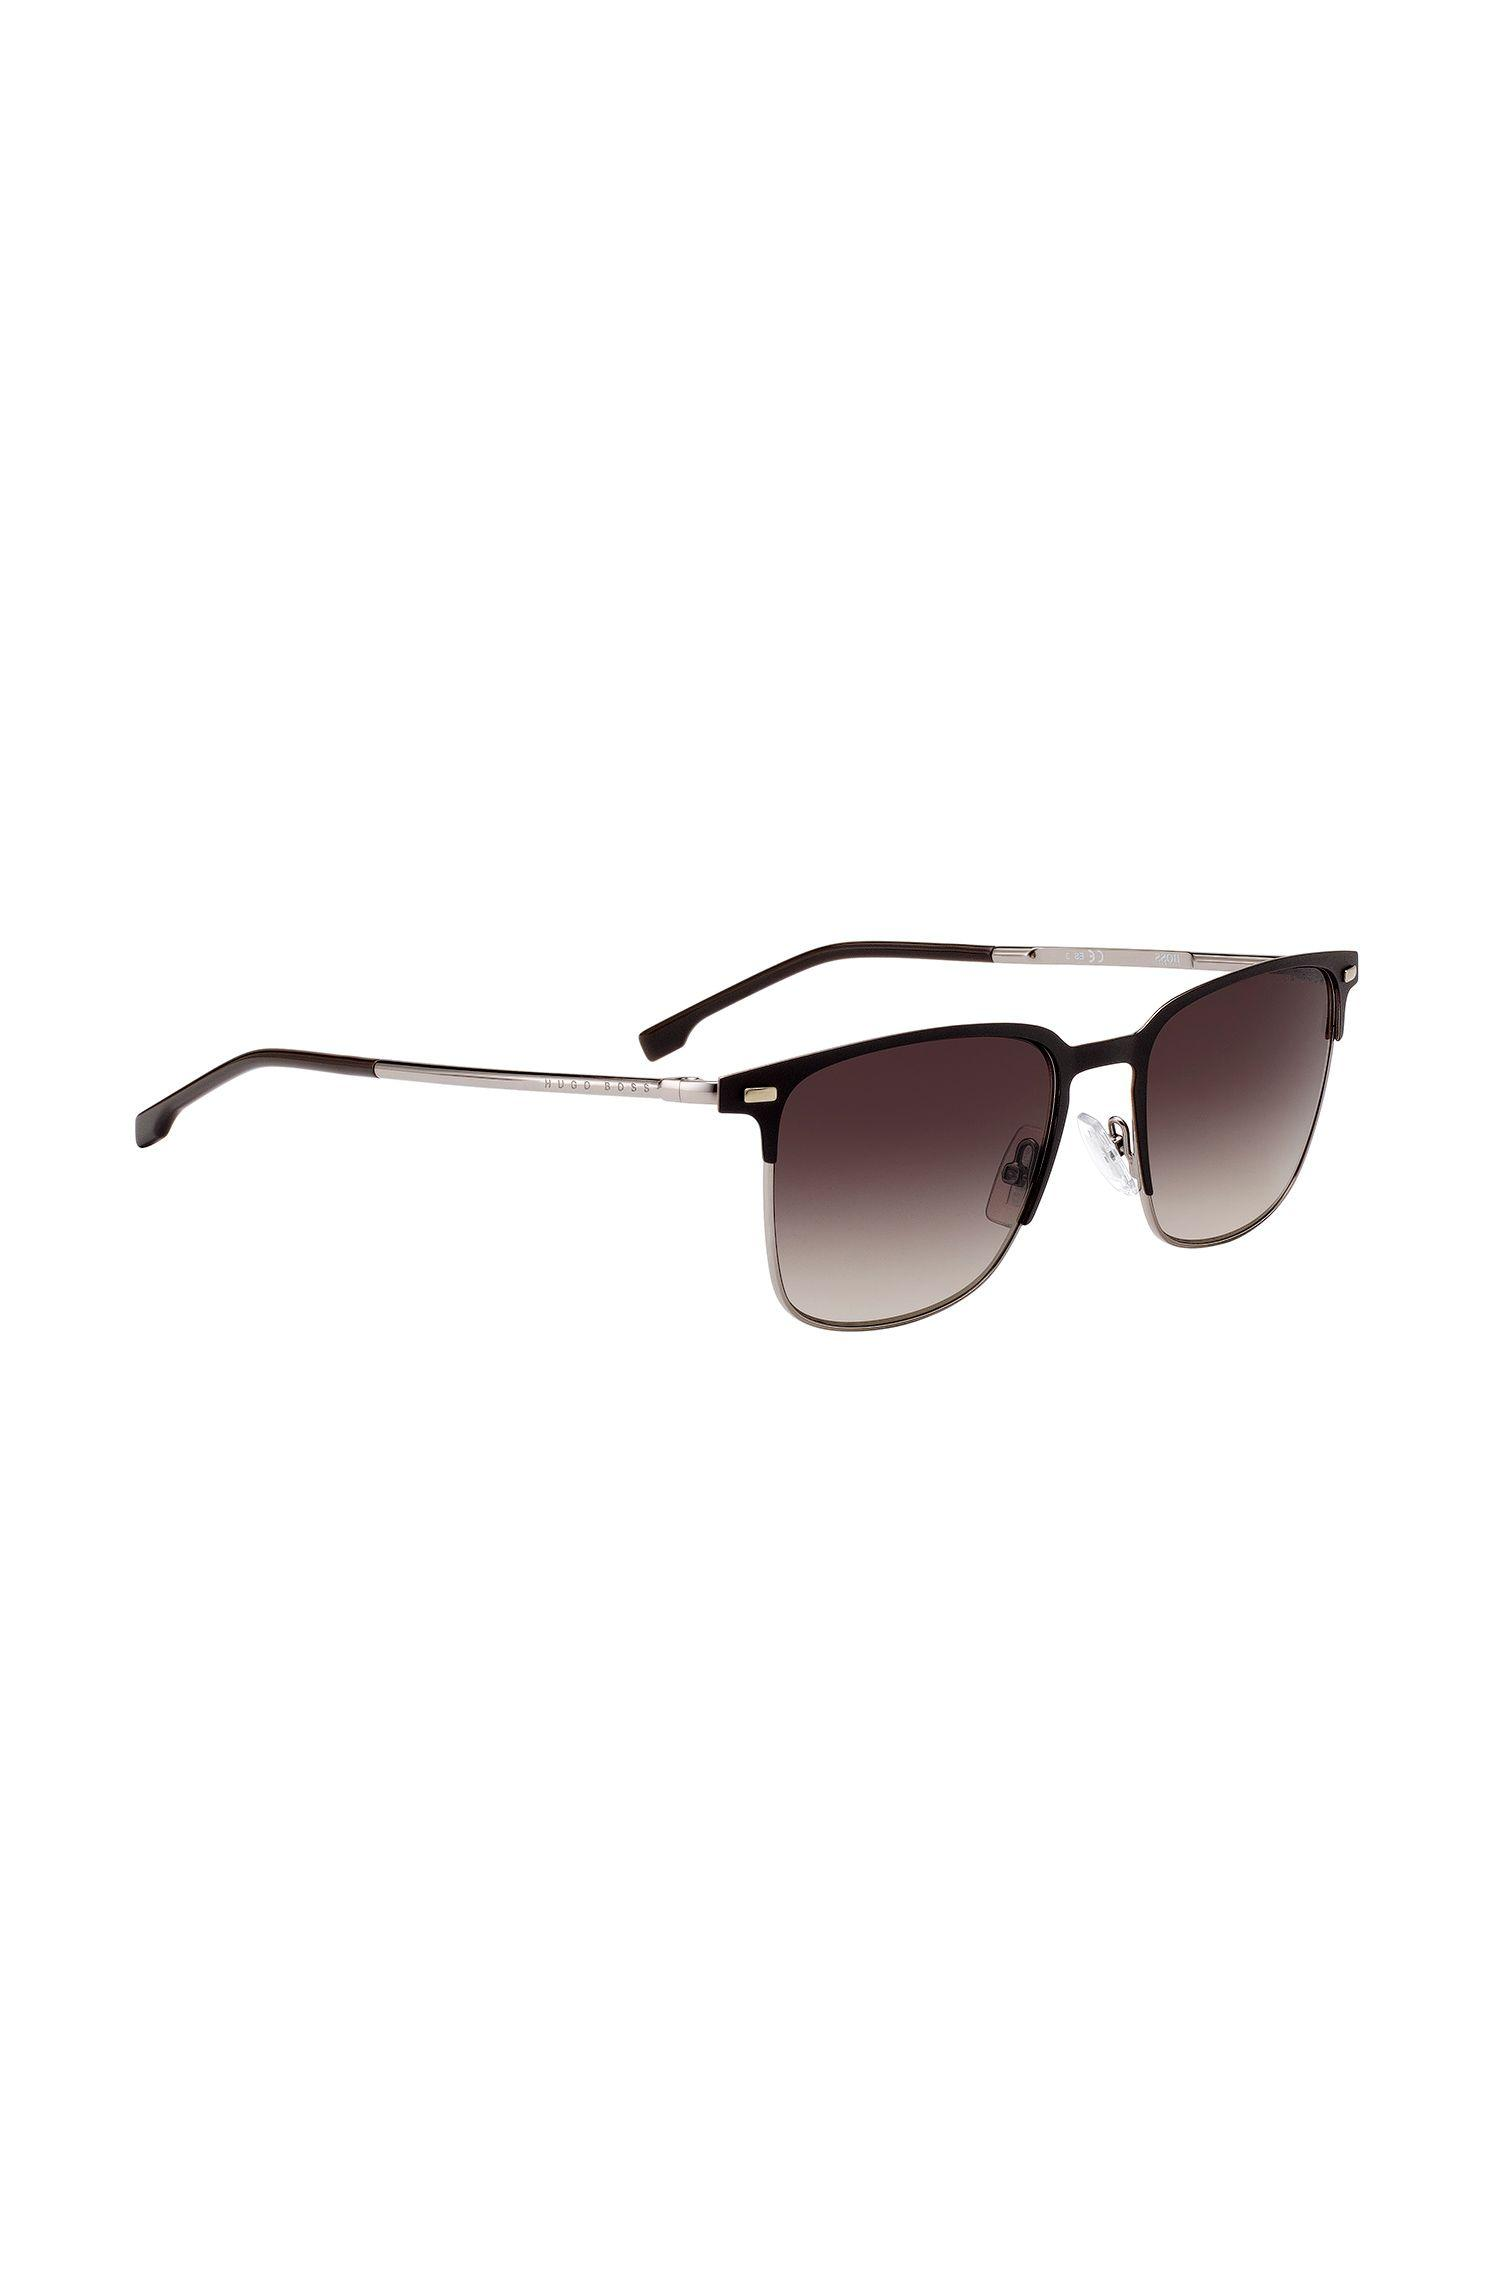 bdd6bccb016 Lyst - Boss Matte-brown Half-frame Sunglasses With Shaded Lenses in ...